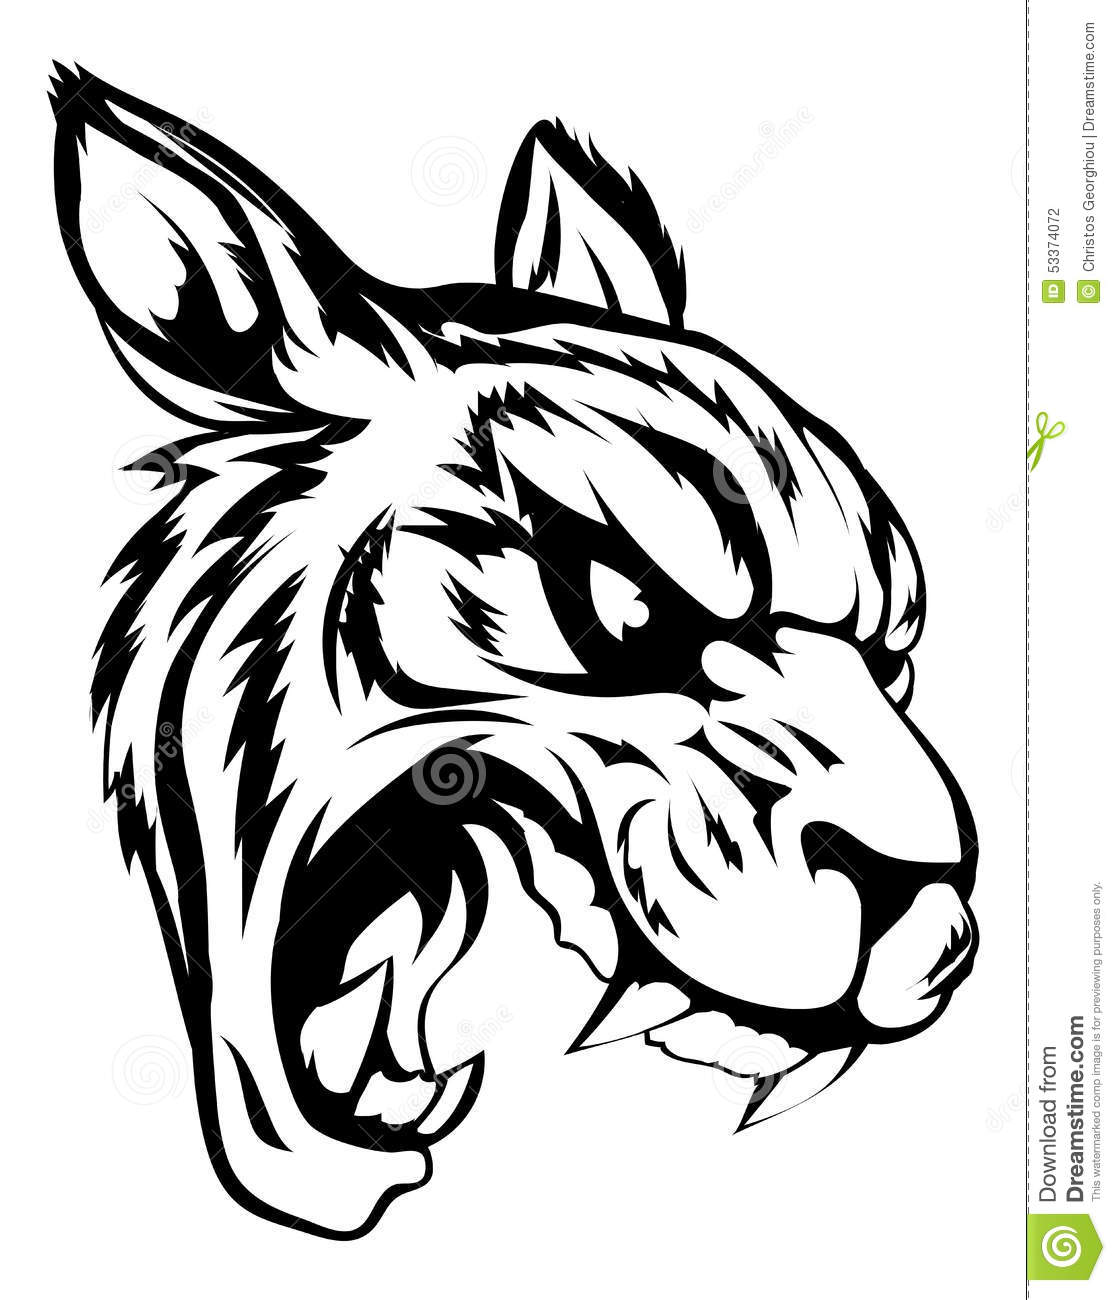 tiger pride clip art - photo #31